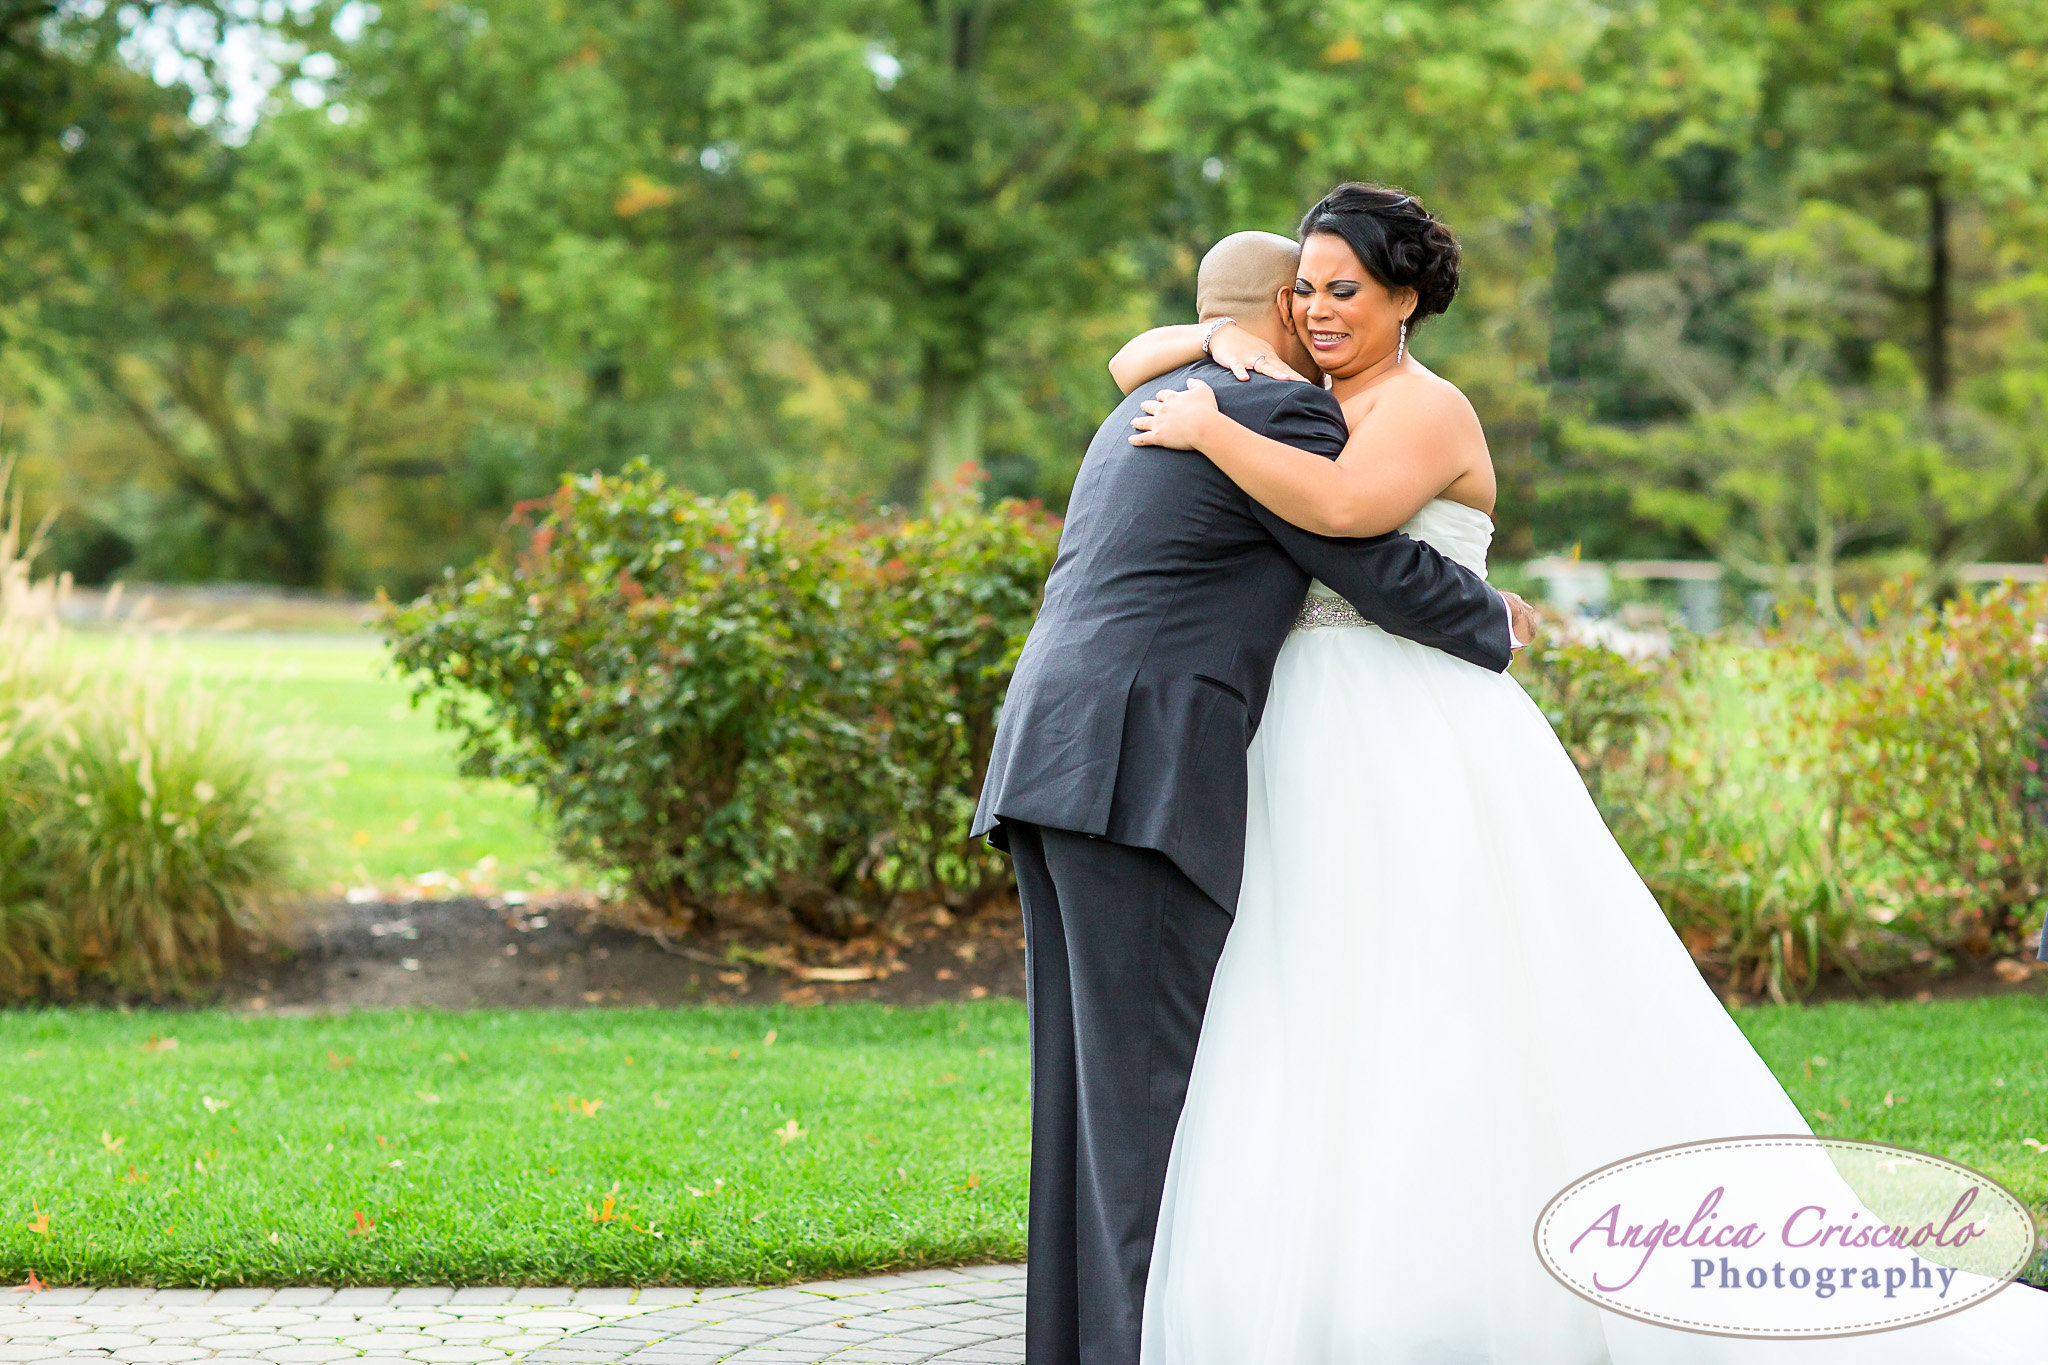 Pelham Bay & Split Rock Golf Course Wedding in the Bronx First Look emotion